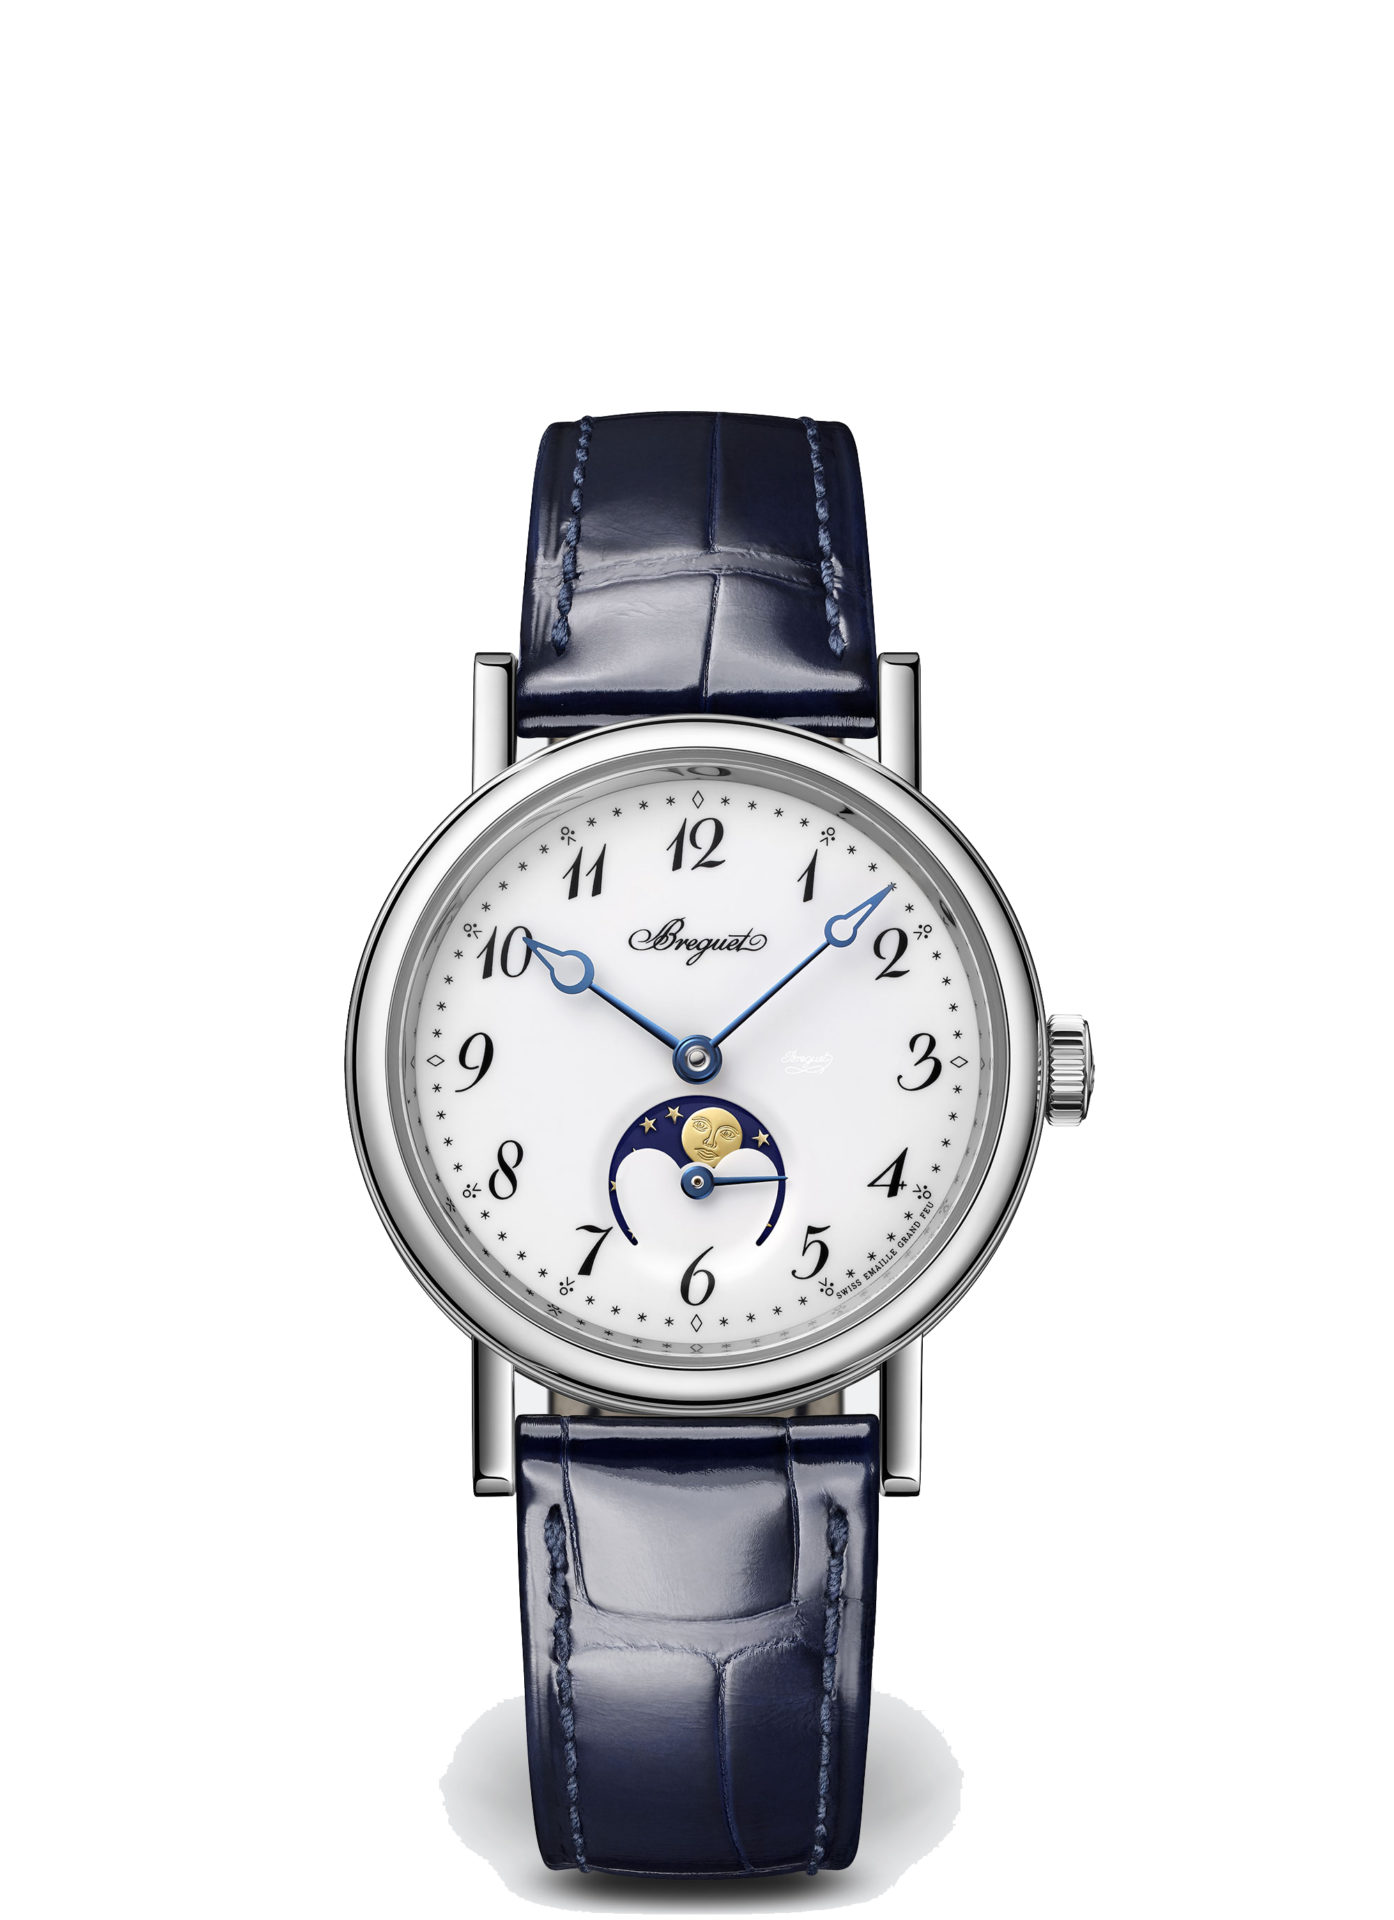 Breguet-Classique-Dame-9087-Hall-of-Time-9087bb-29-964